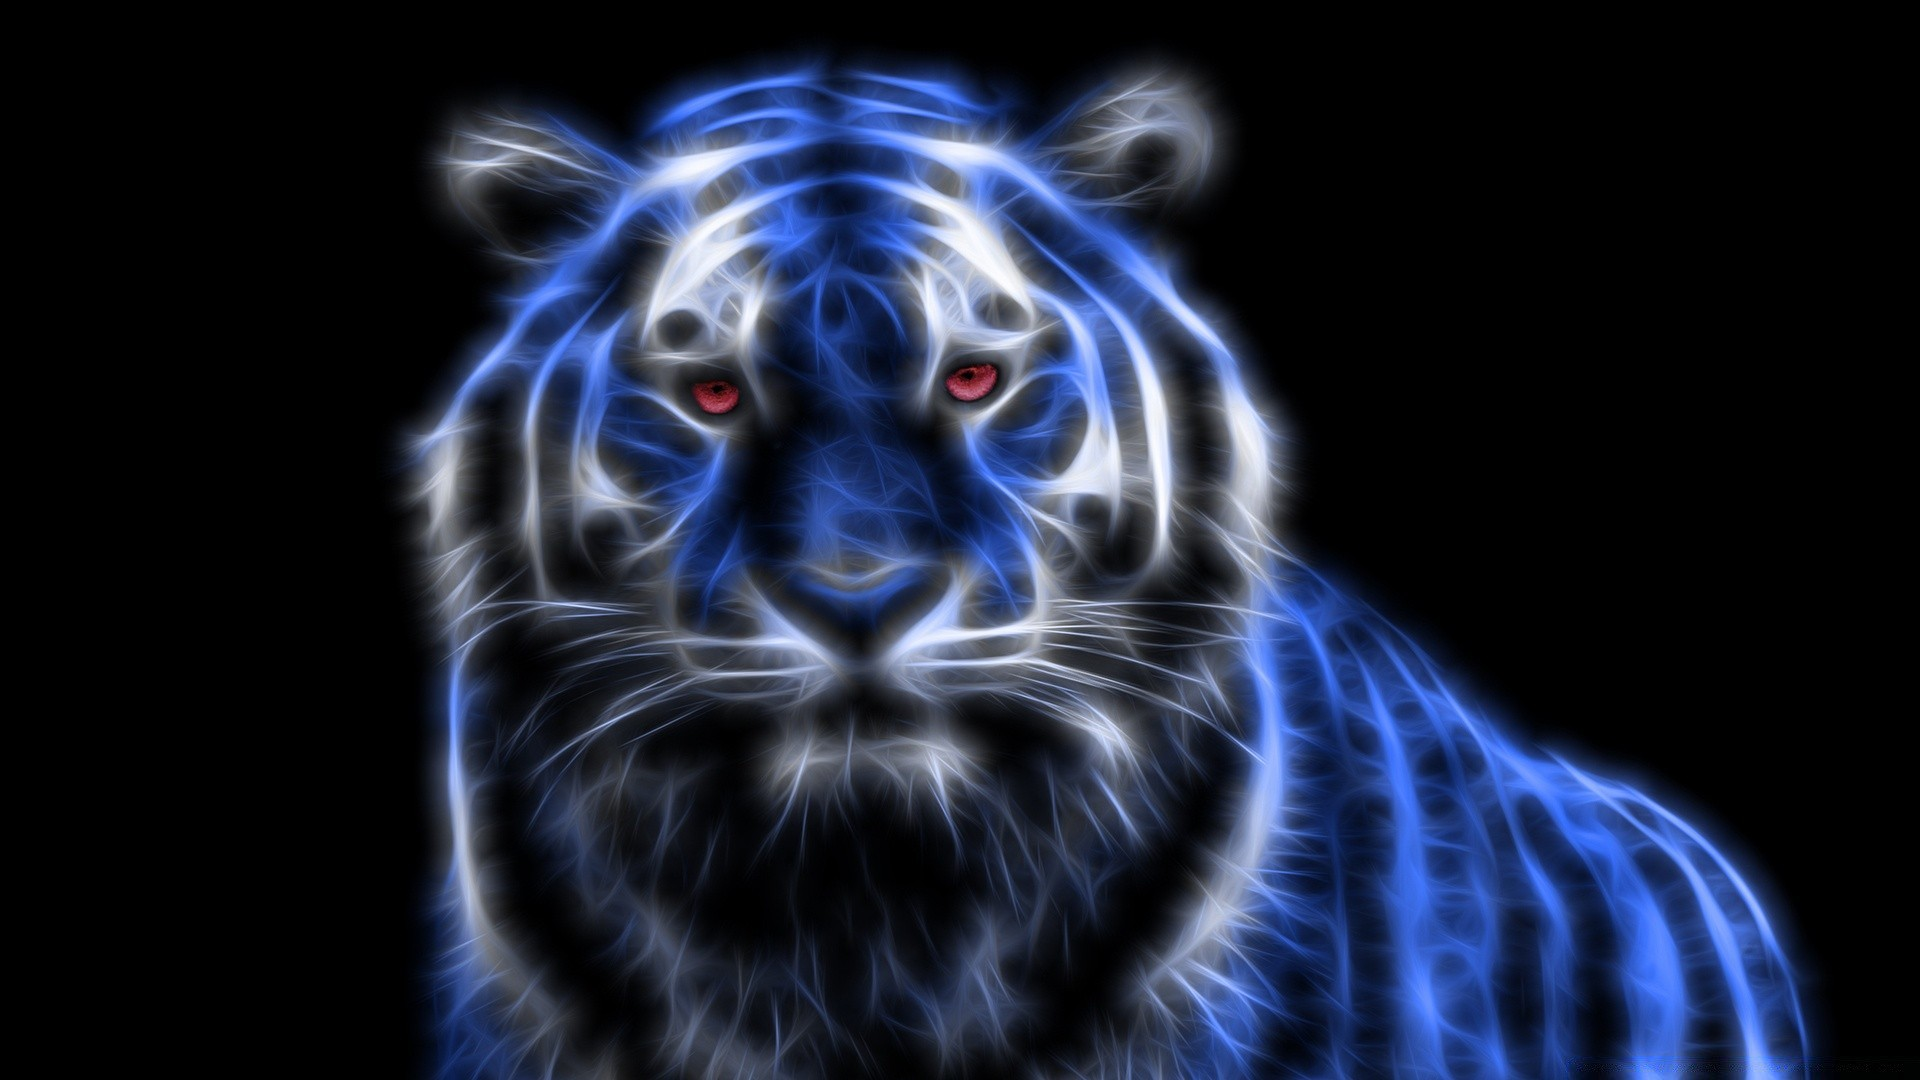 Blue Glowing Tiger Android Wallpapers